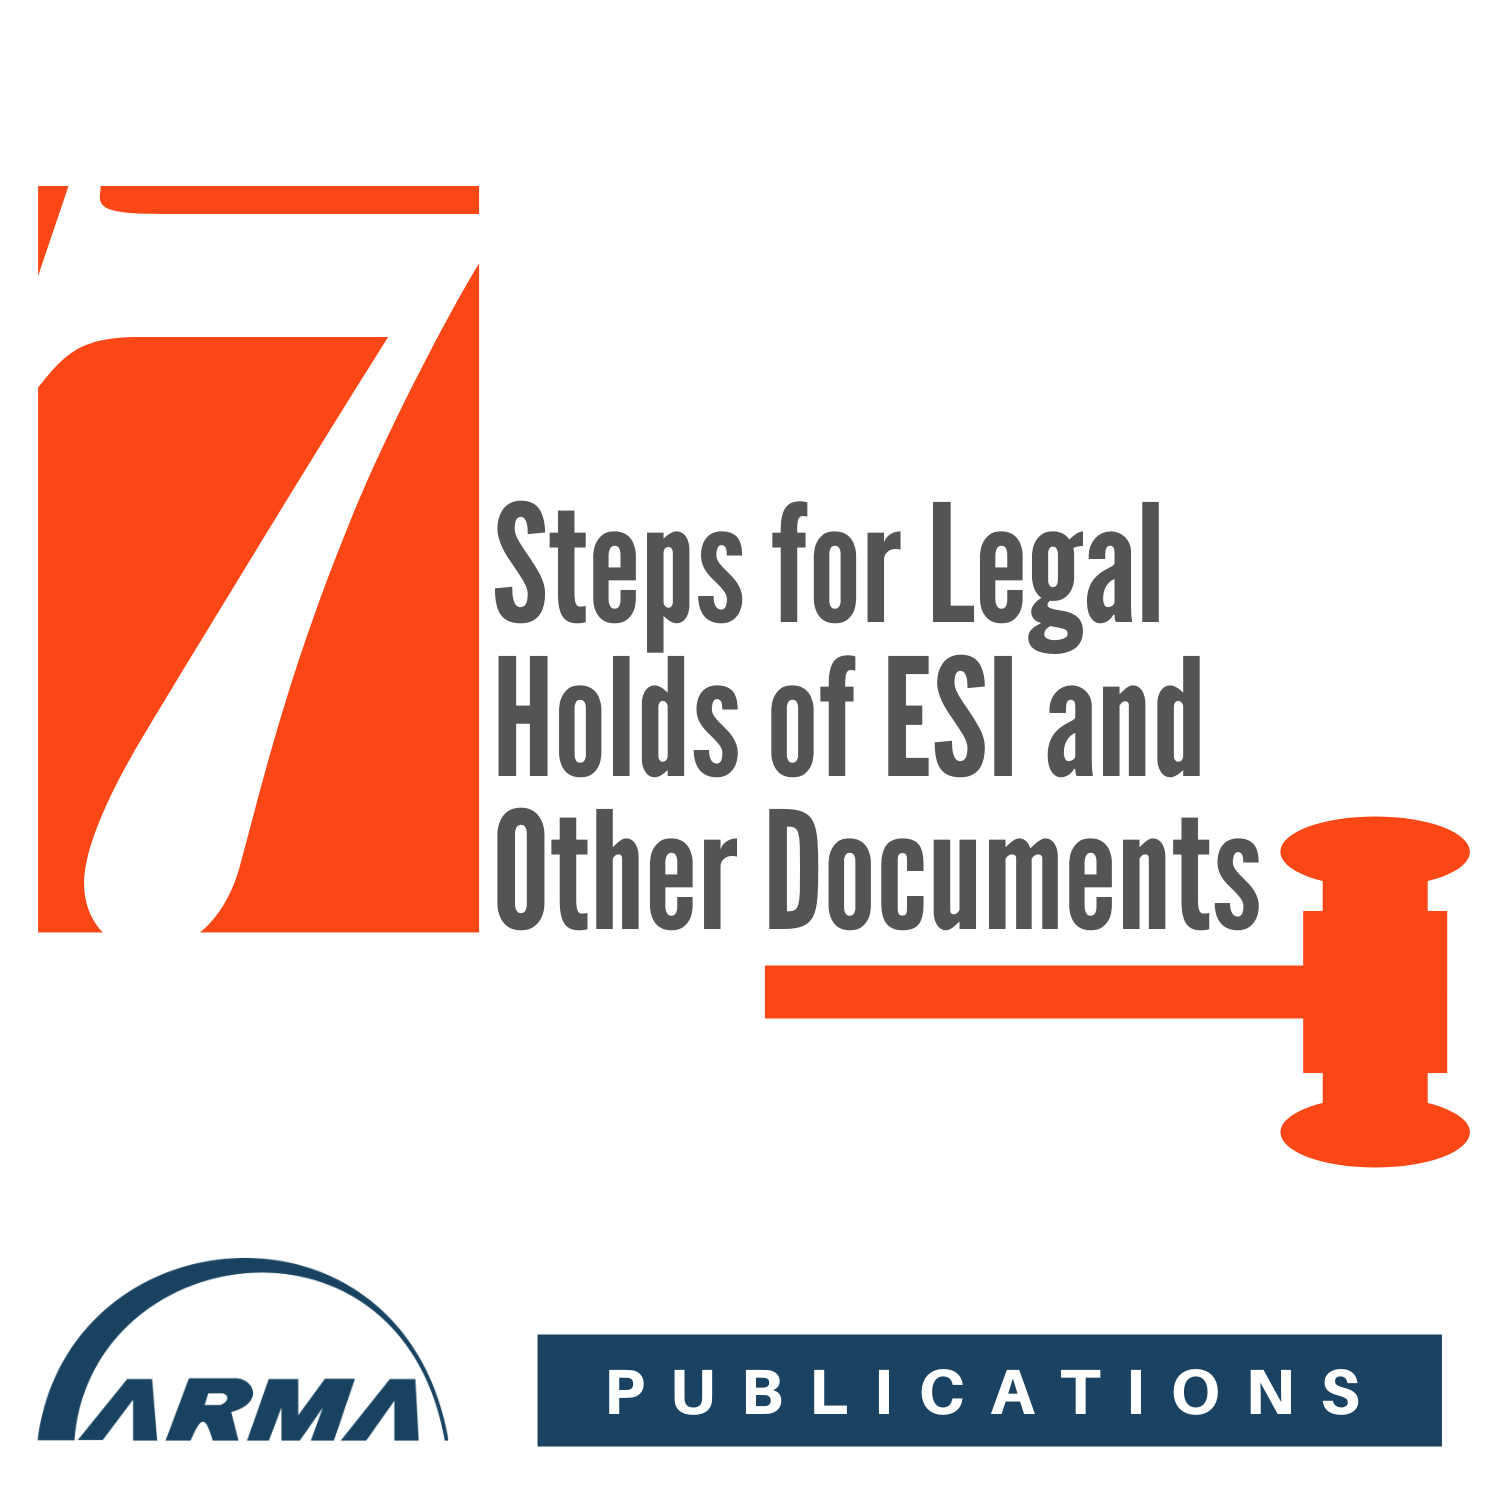 7 Steps for Legal Holds of ESI and Other Documents